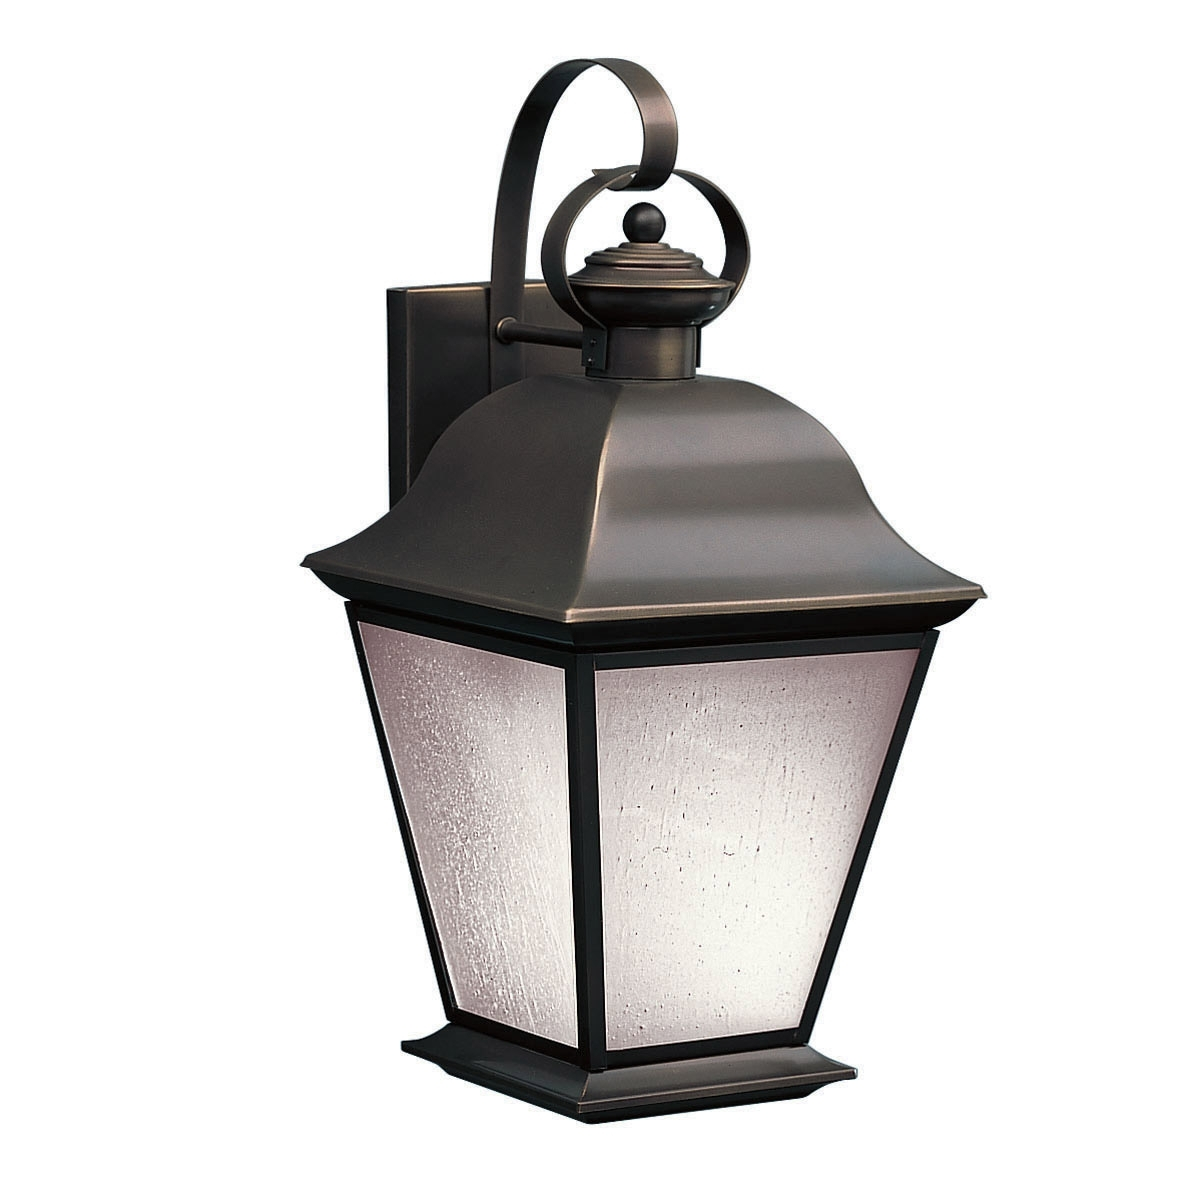 Most Recent Light : Simple Uniques Minimalist Black Metal Hard Quality Outdoor Regarding Quality Outdoor Wall Lighting (View 5 of 20)